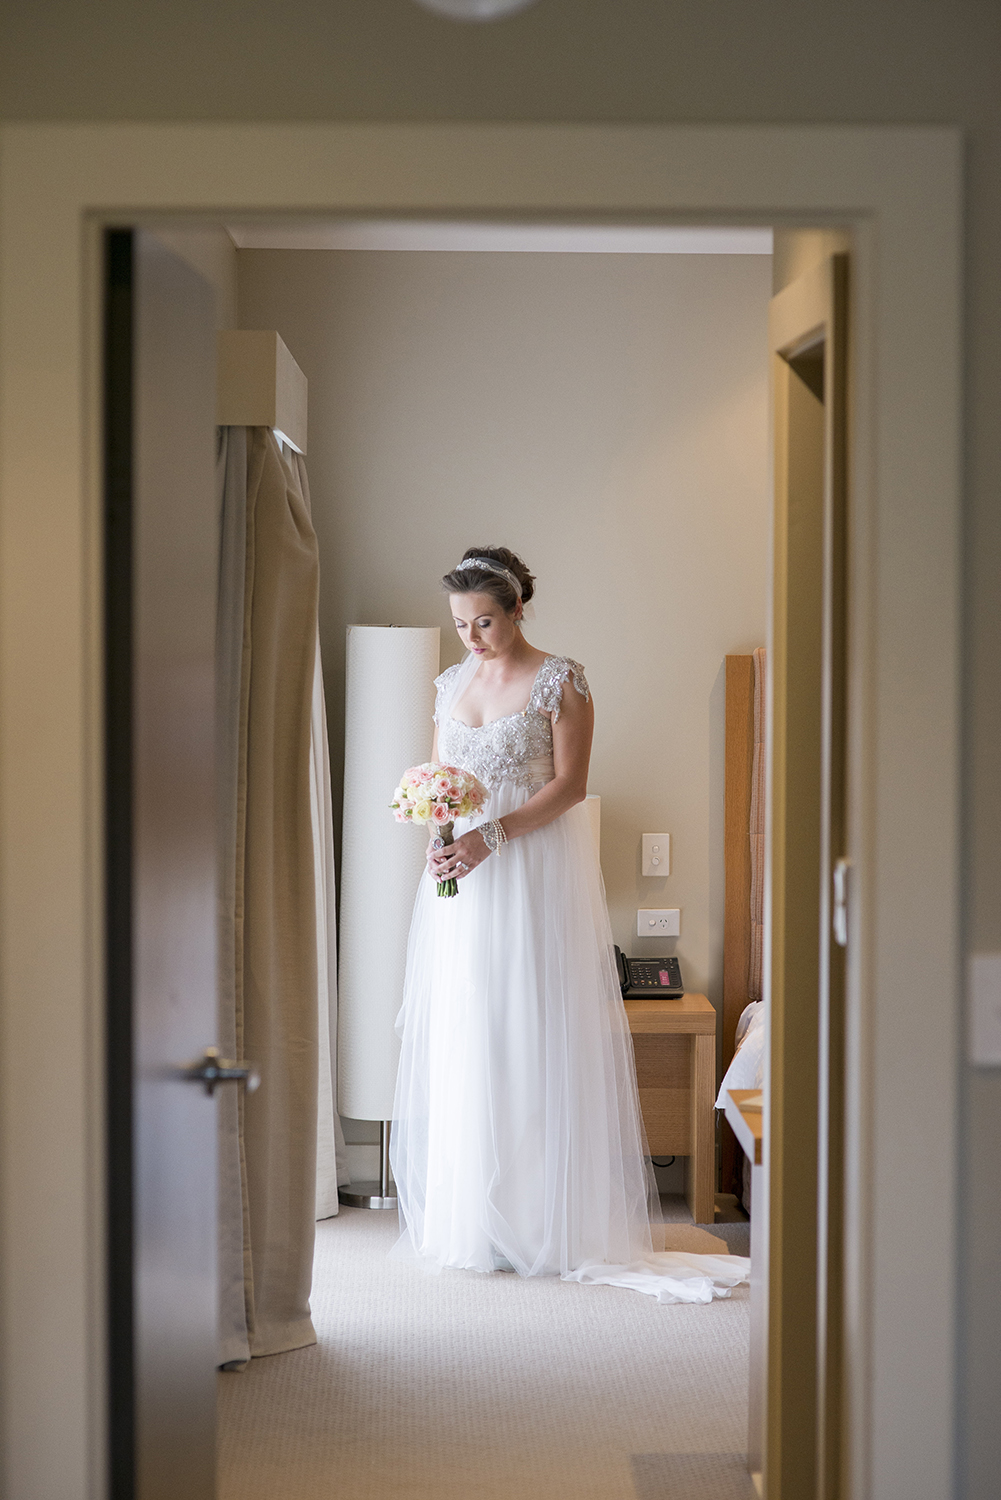 Our Wedding0188.jpg